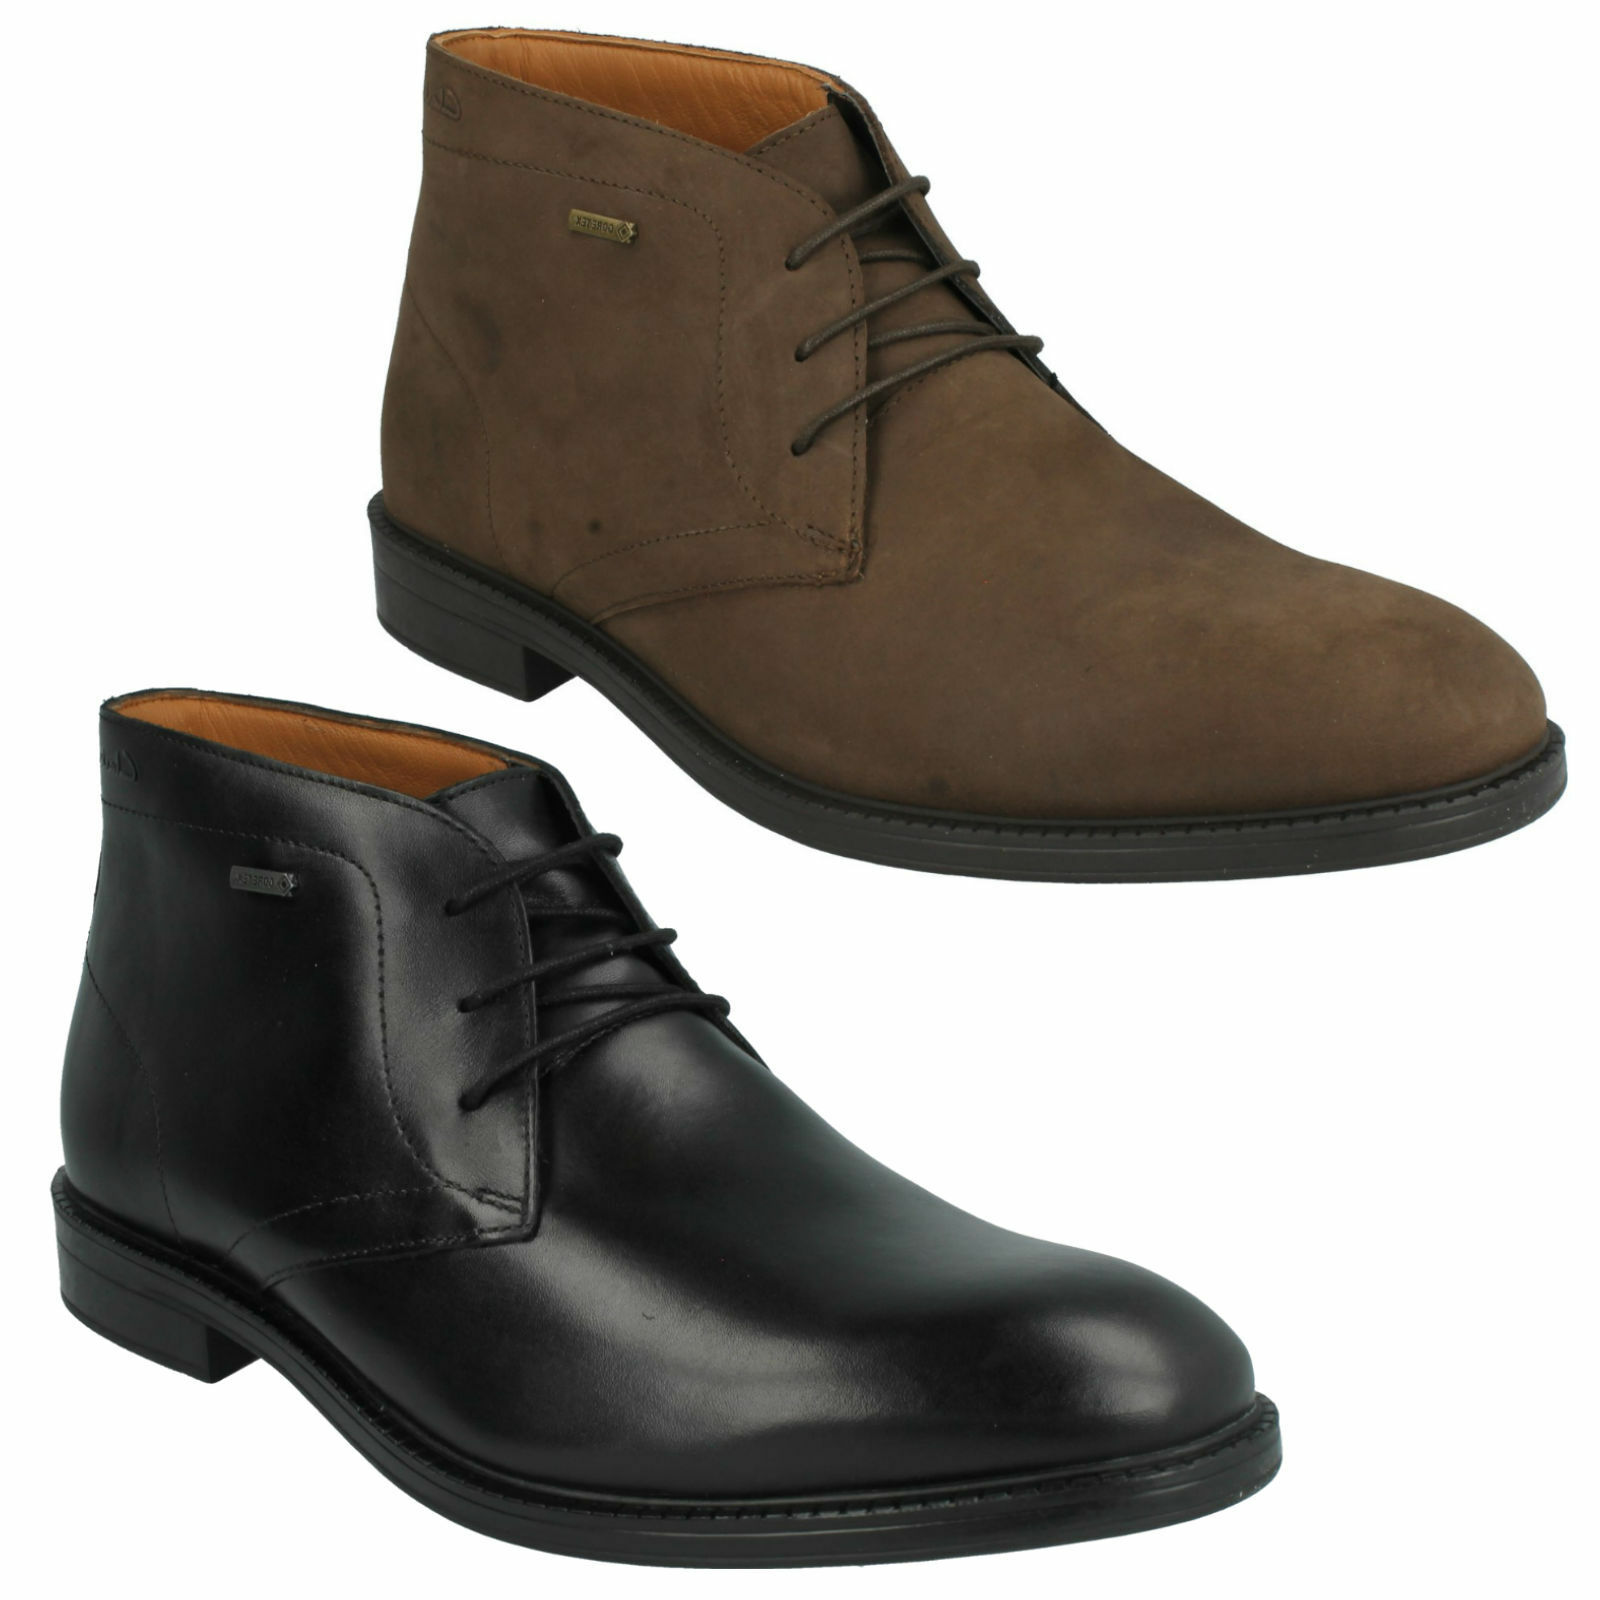 CHILVER HI GTX Hombre CLARKS WATERPROOF ANKLE LACE UP LEATHER FORMAL ANKLE WATERPROOF DESERT botas a268a1